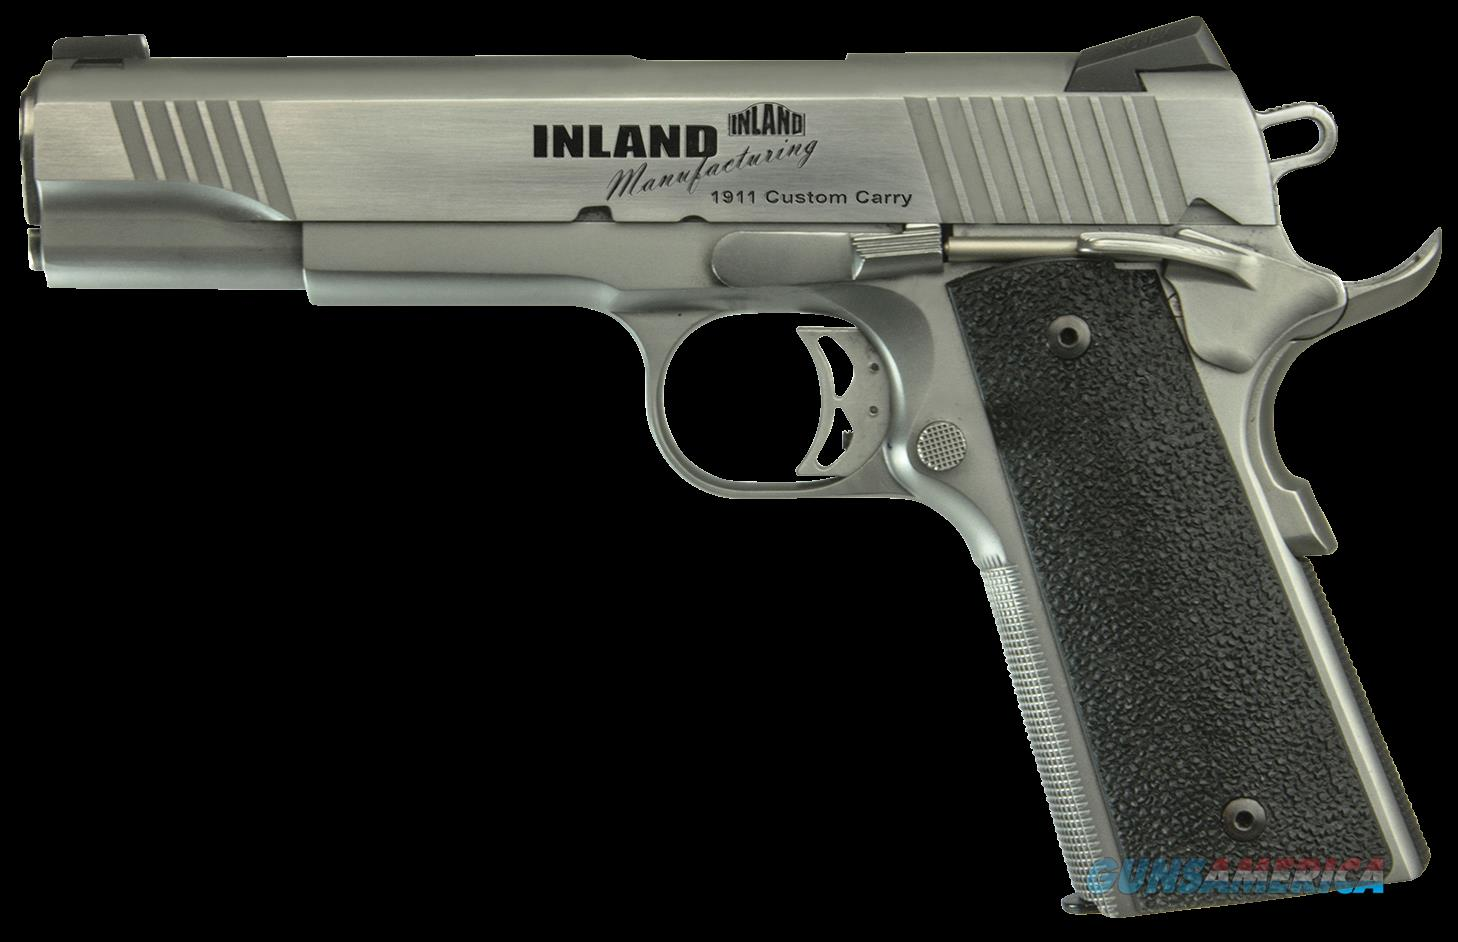 "Inland Mfg ILM1911TC 1911 Custom Carry Single 45 ACP 5"" 7+1 Black Ergo XT Grip Stainless  Guns > Pistols > IJ Misc Pistols"